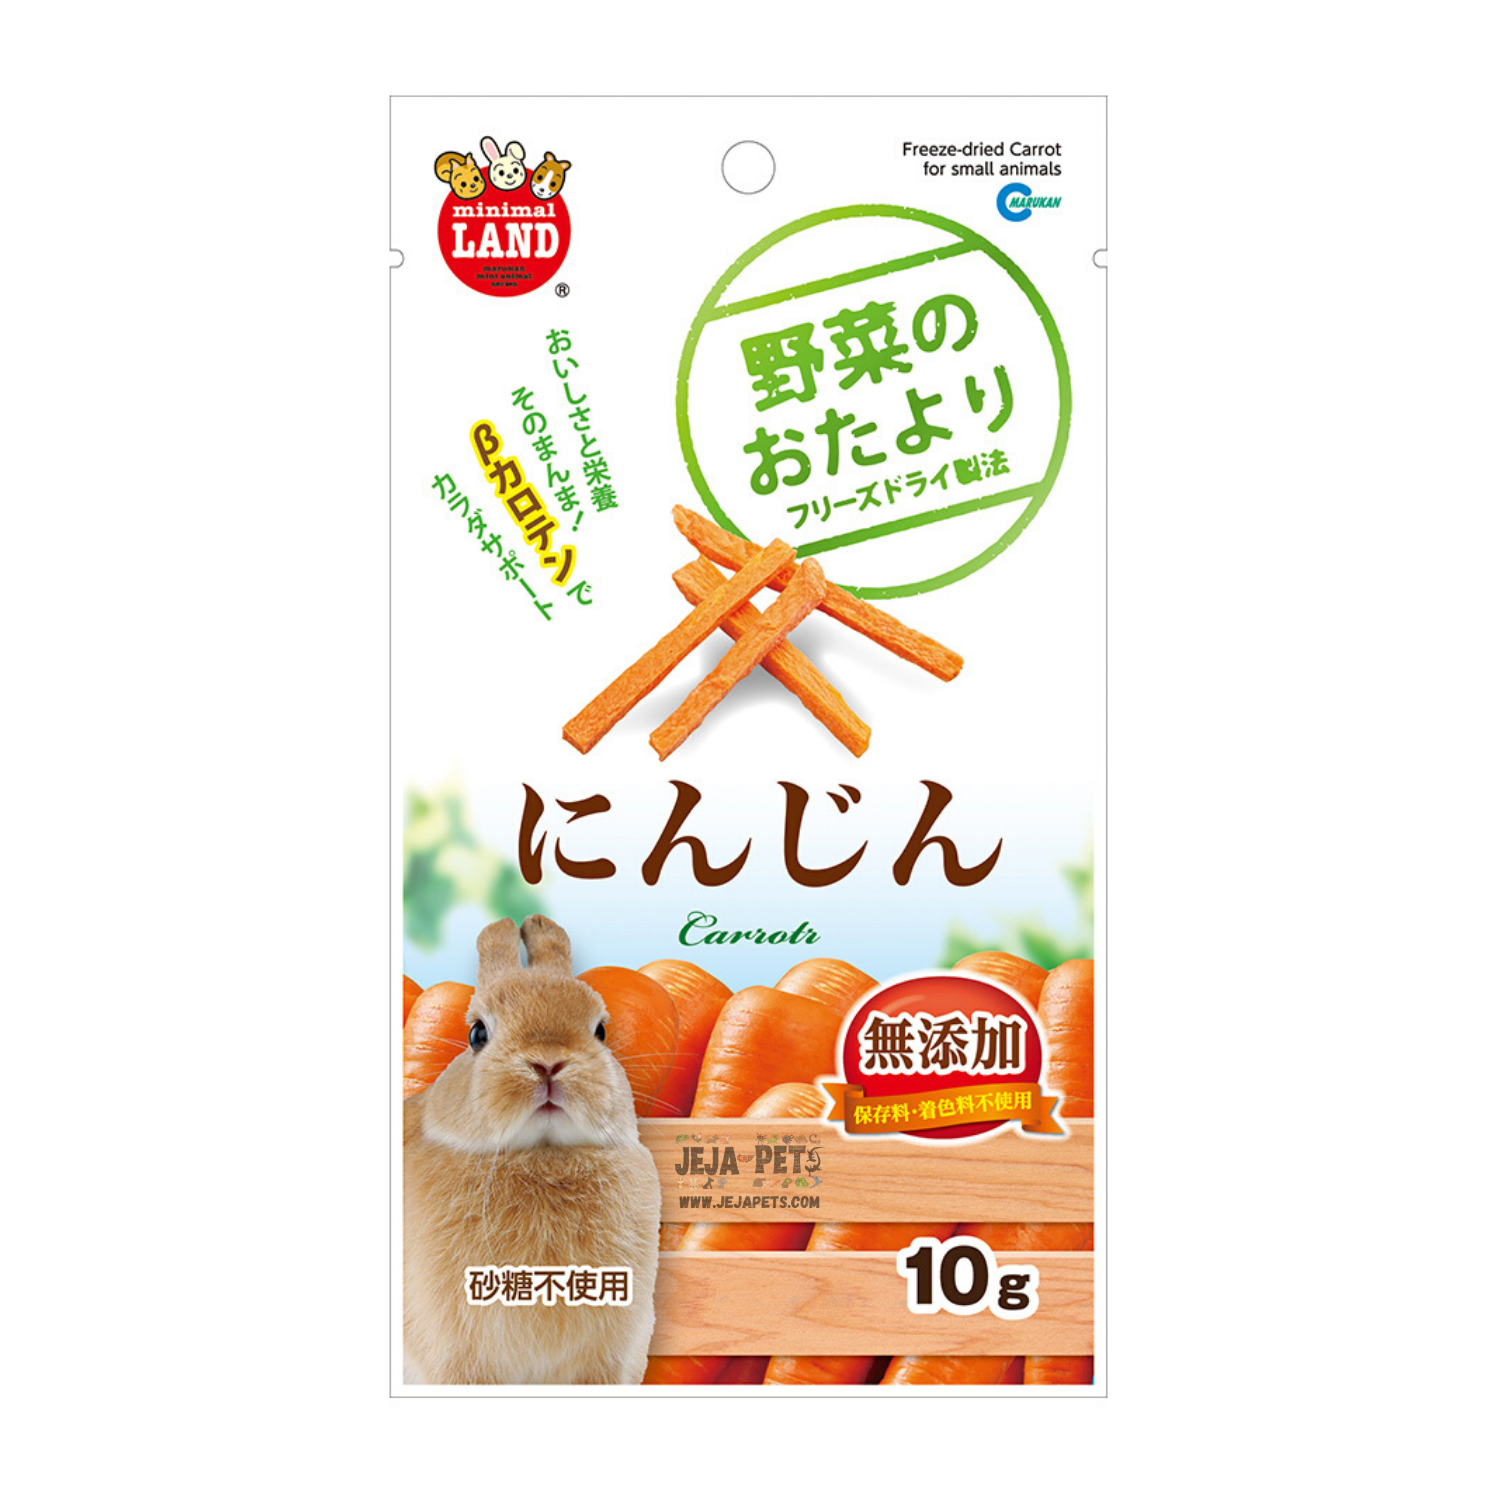 Marukan Freeze Dried Carrot for Small Animals - 10g